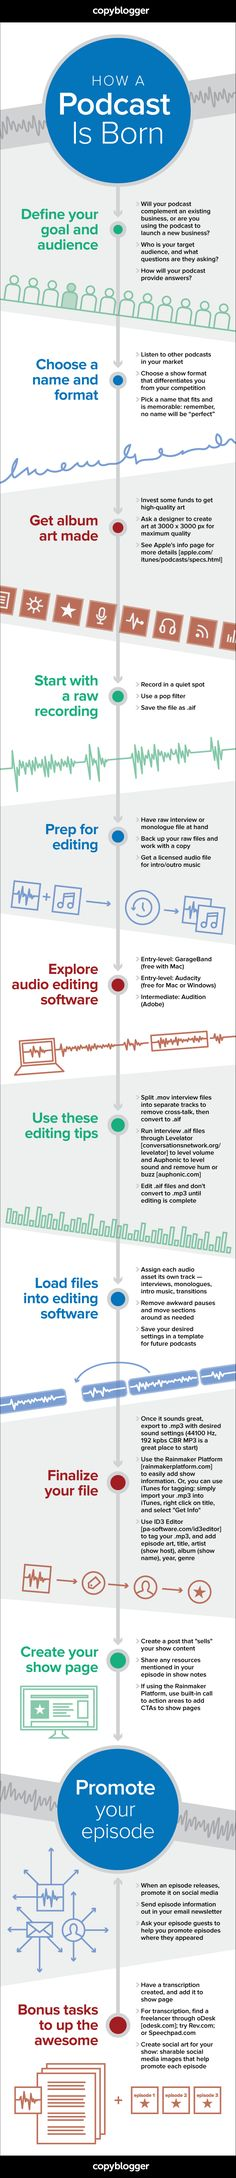 A Beginner's Guide to Podcasting [INFOGRAPHIC] | Social Media Today